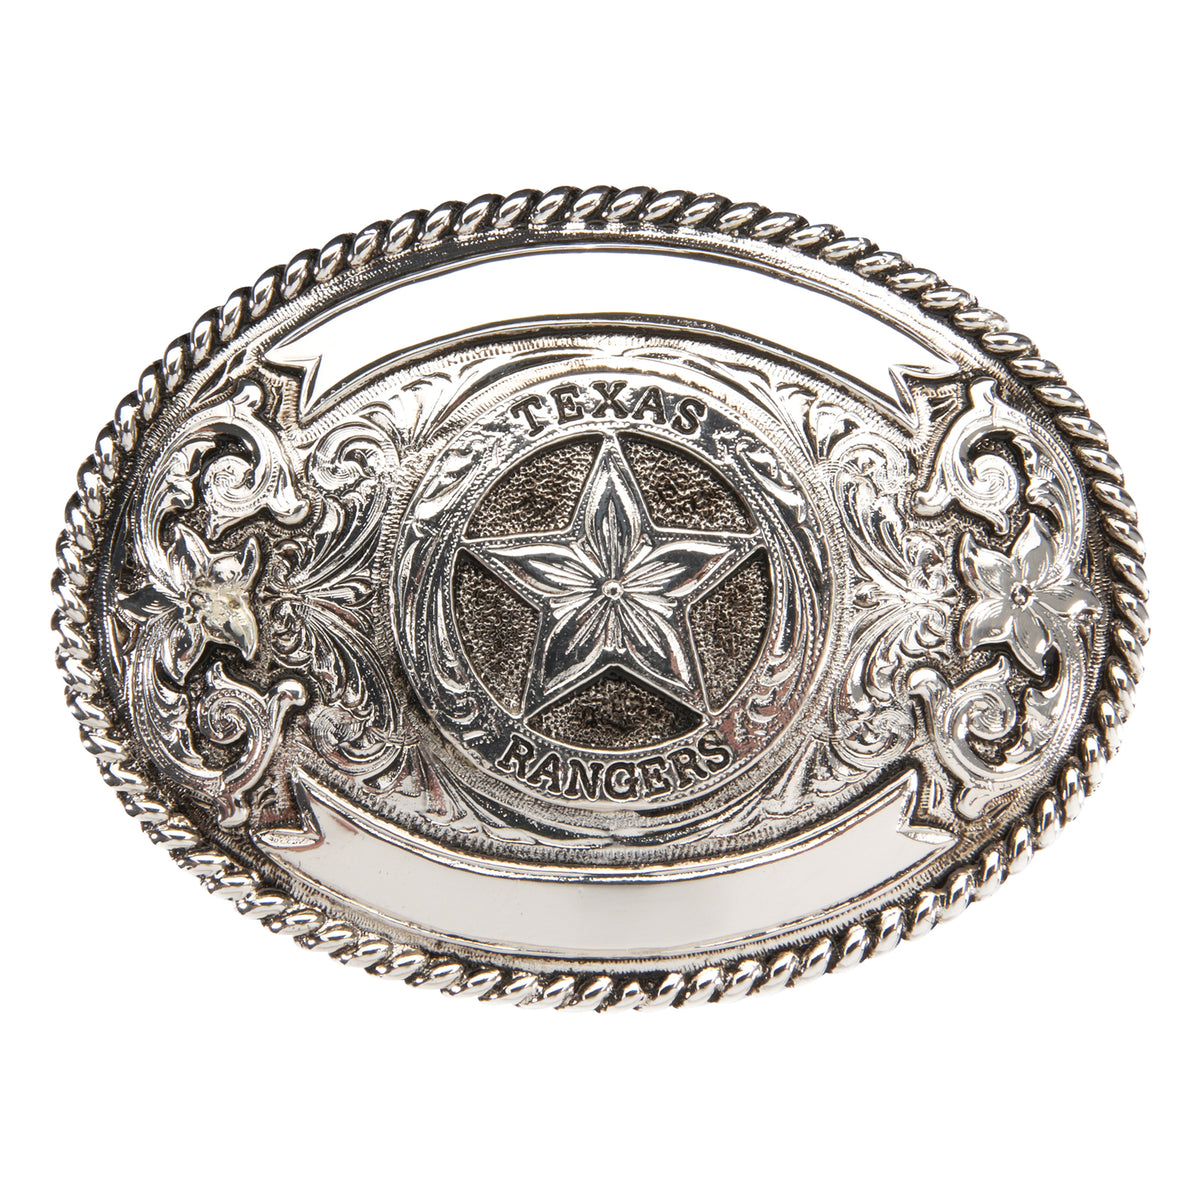 Texas Ranger Buckle